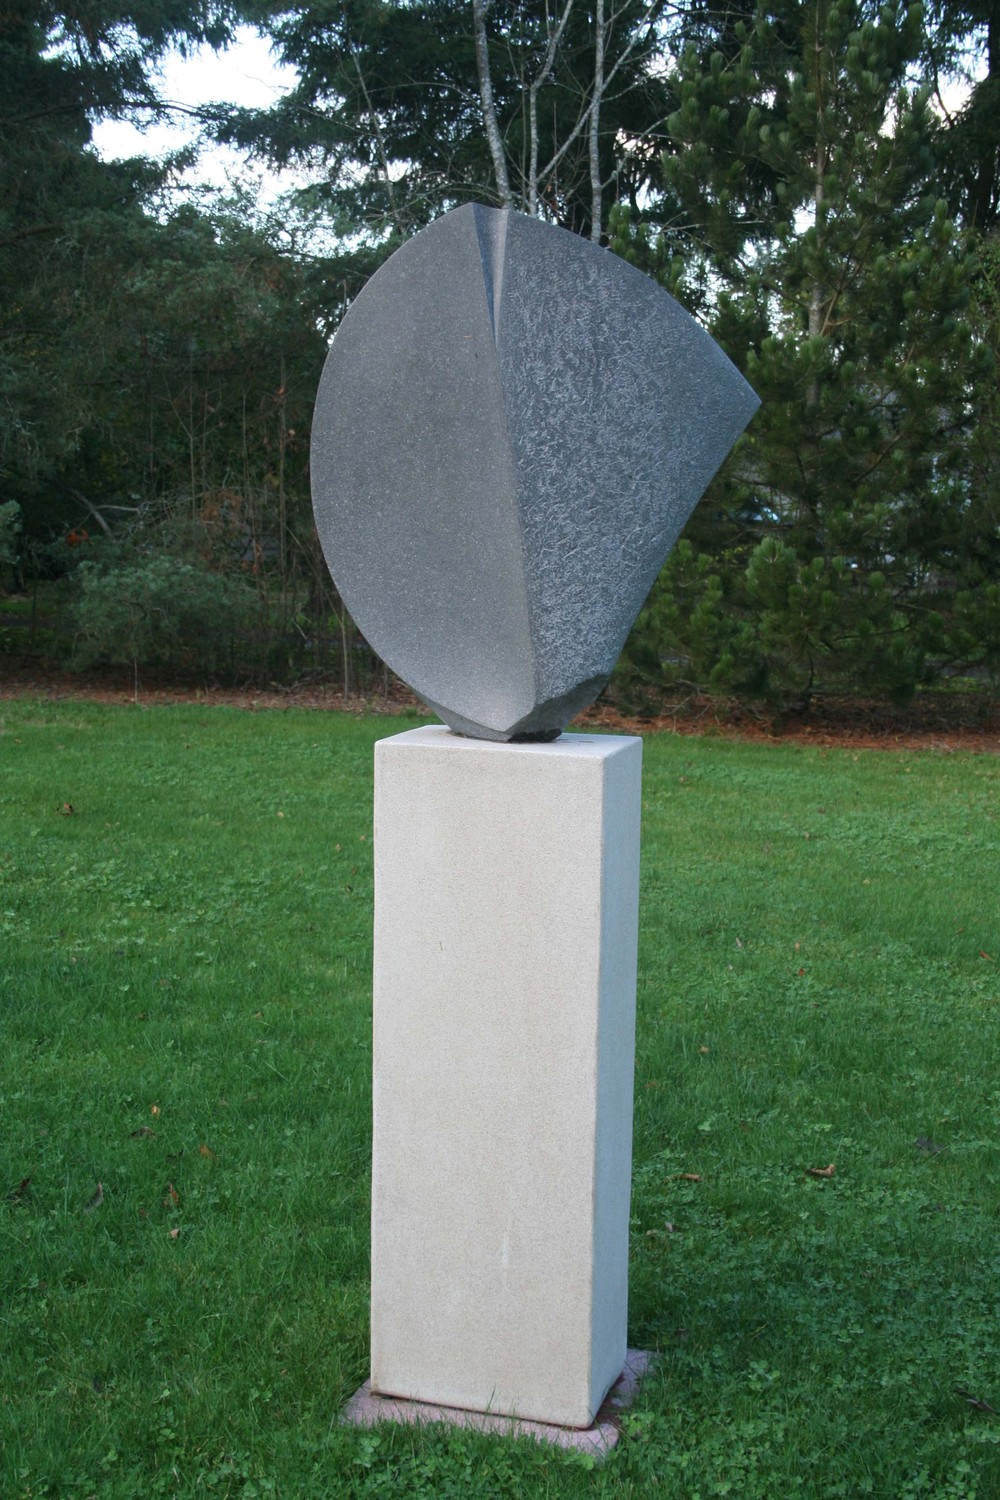 shield sculpture 001-1.JPG